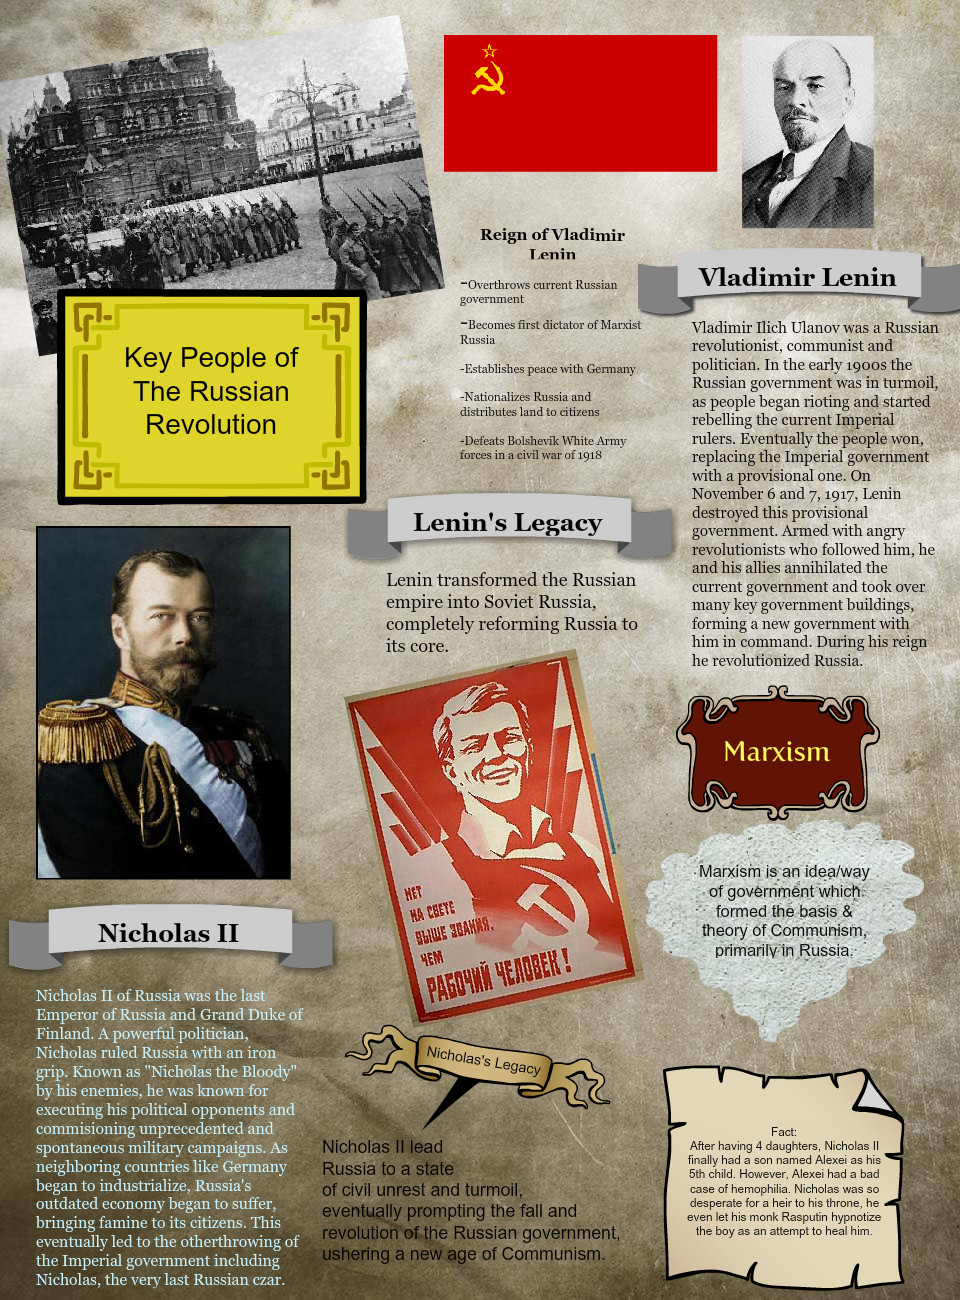 Key People of the Russian Revolution